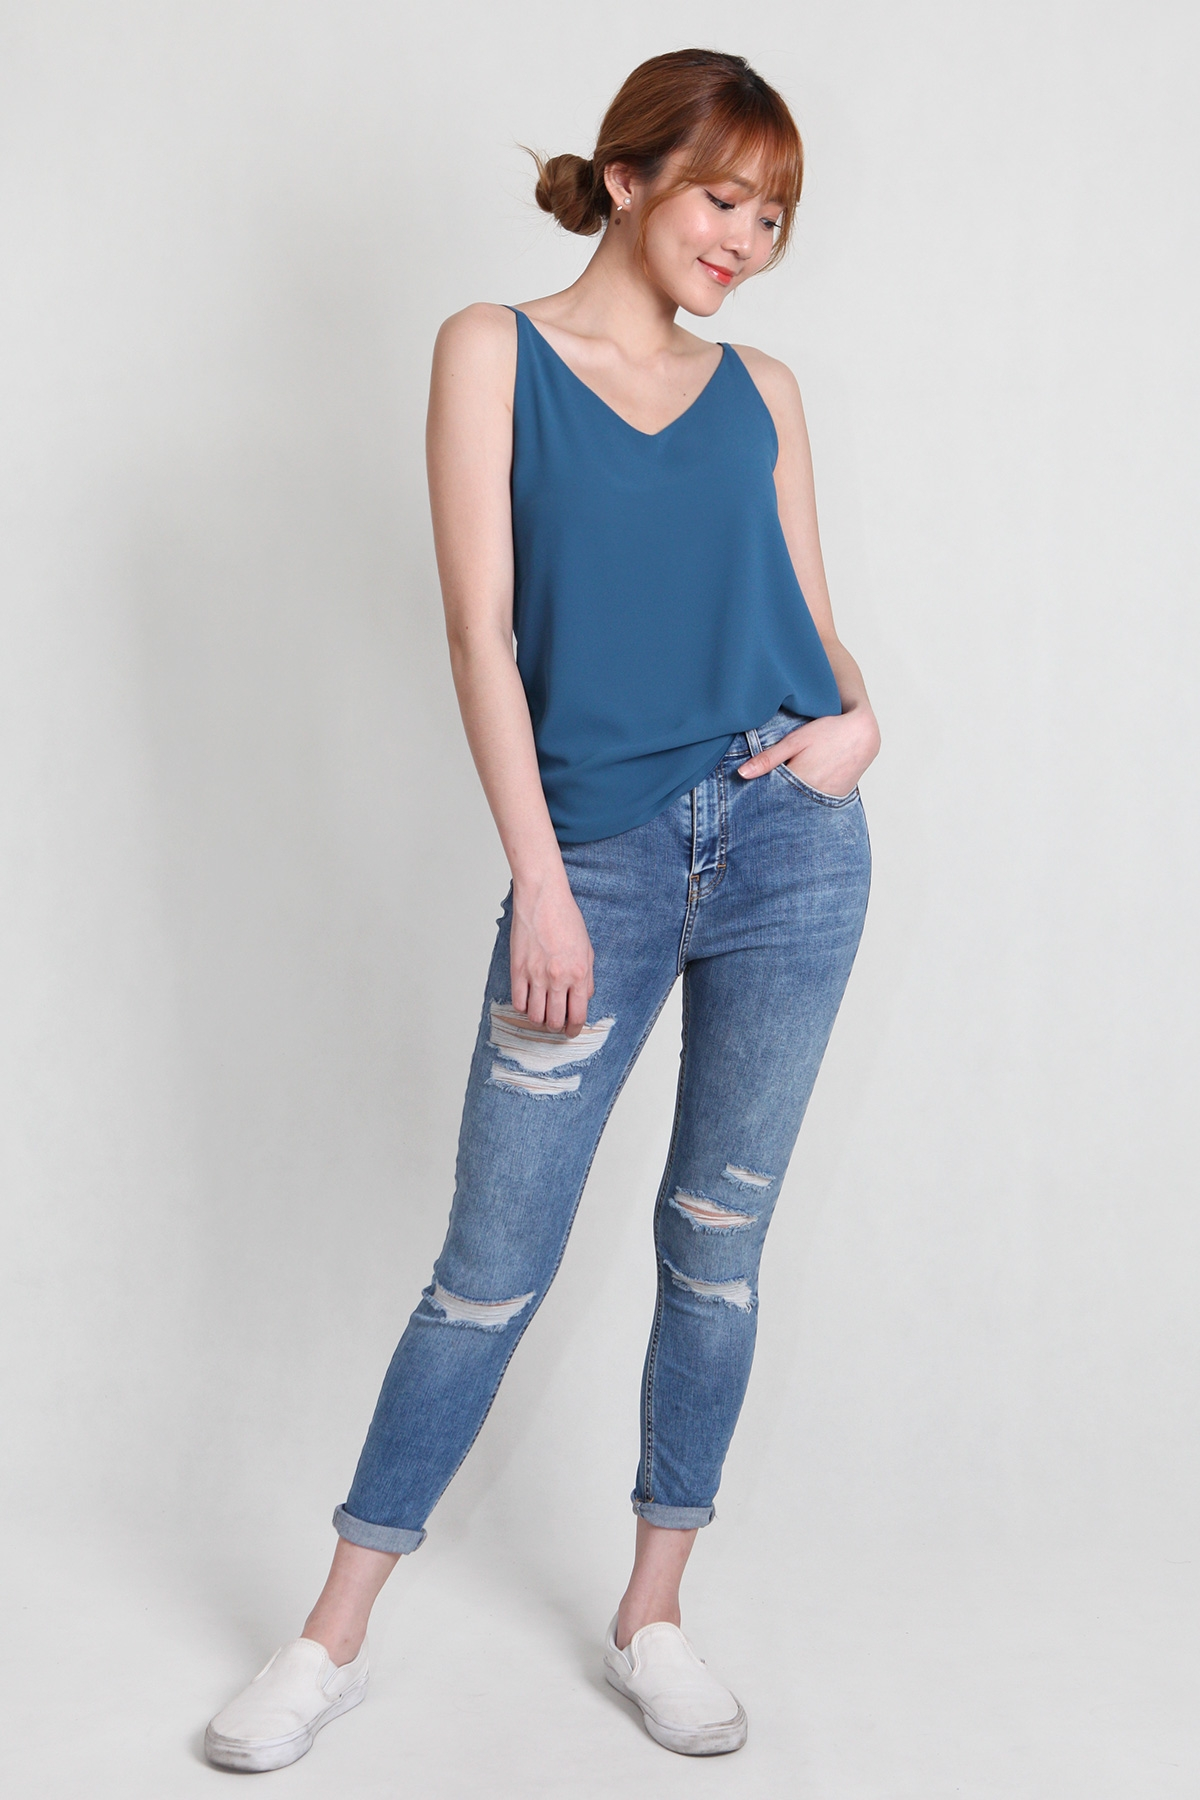 Plunge V-Neck Cami in Teal